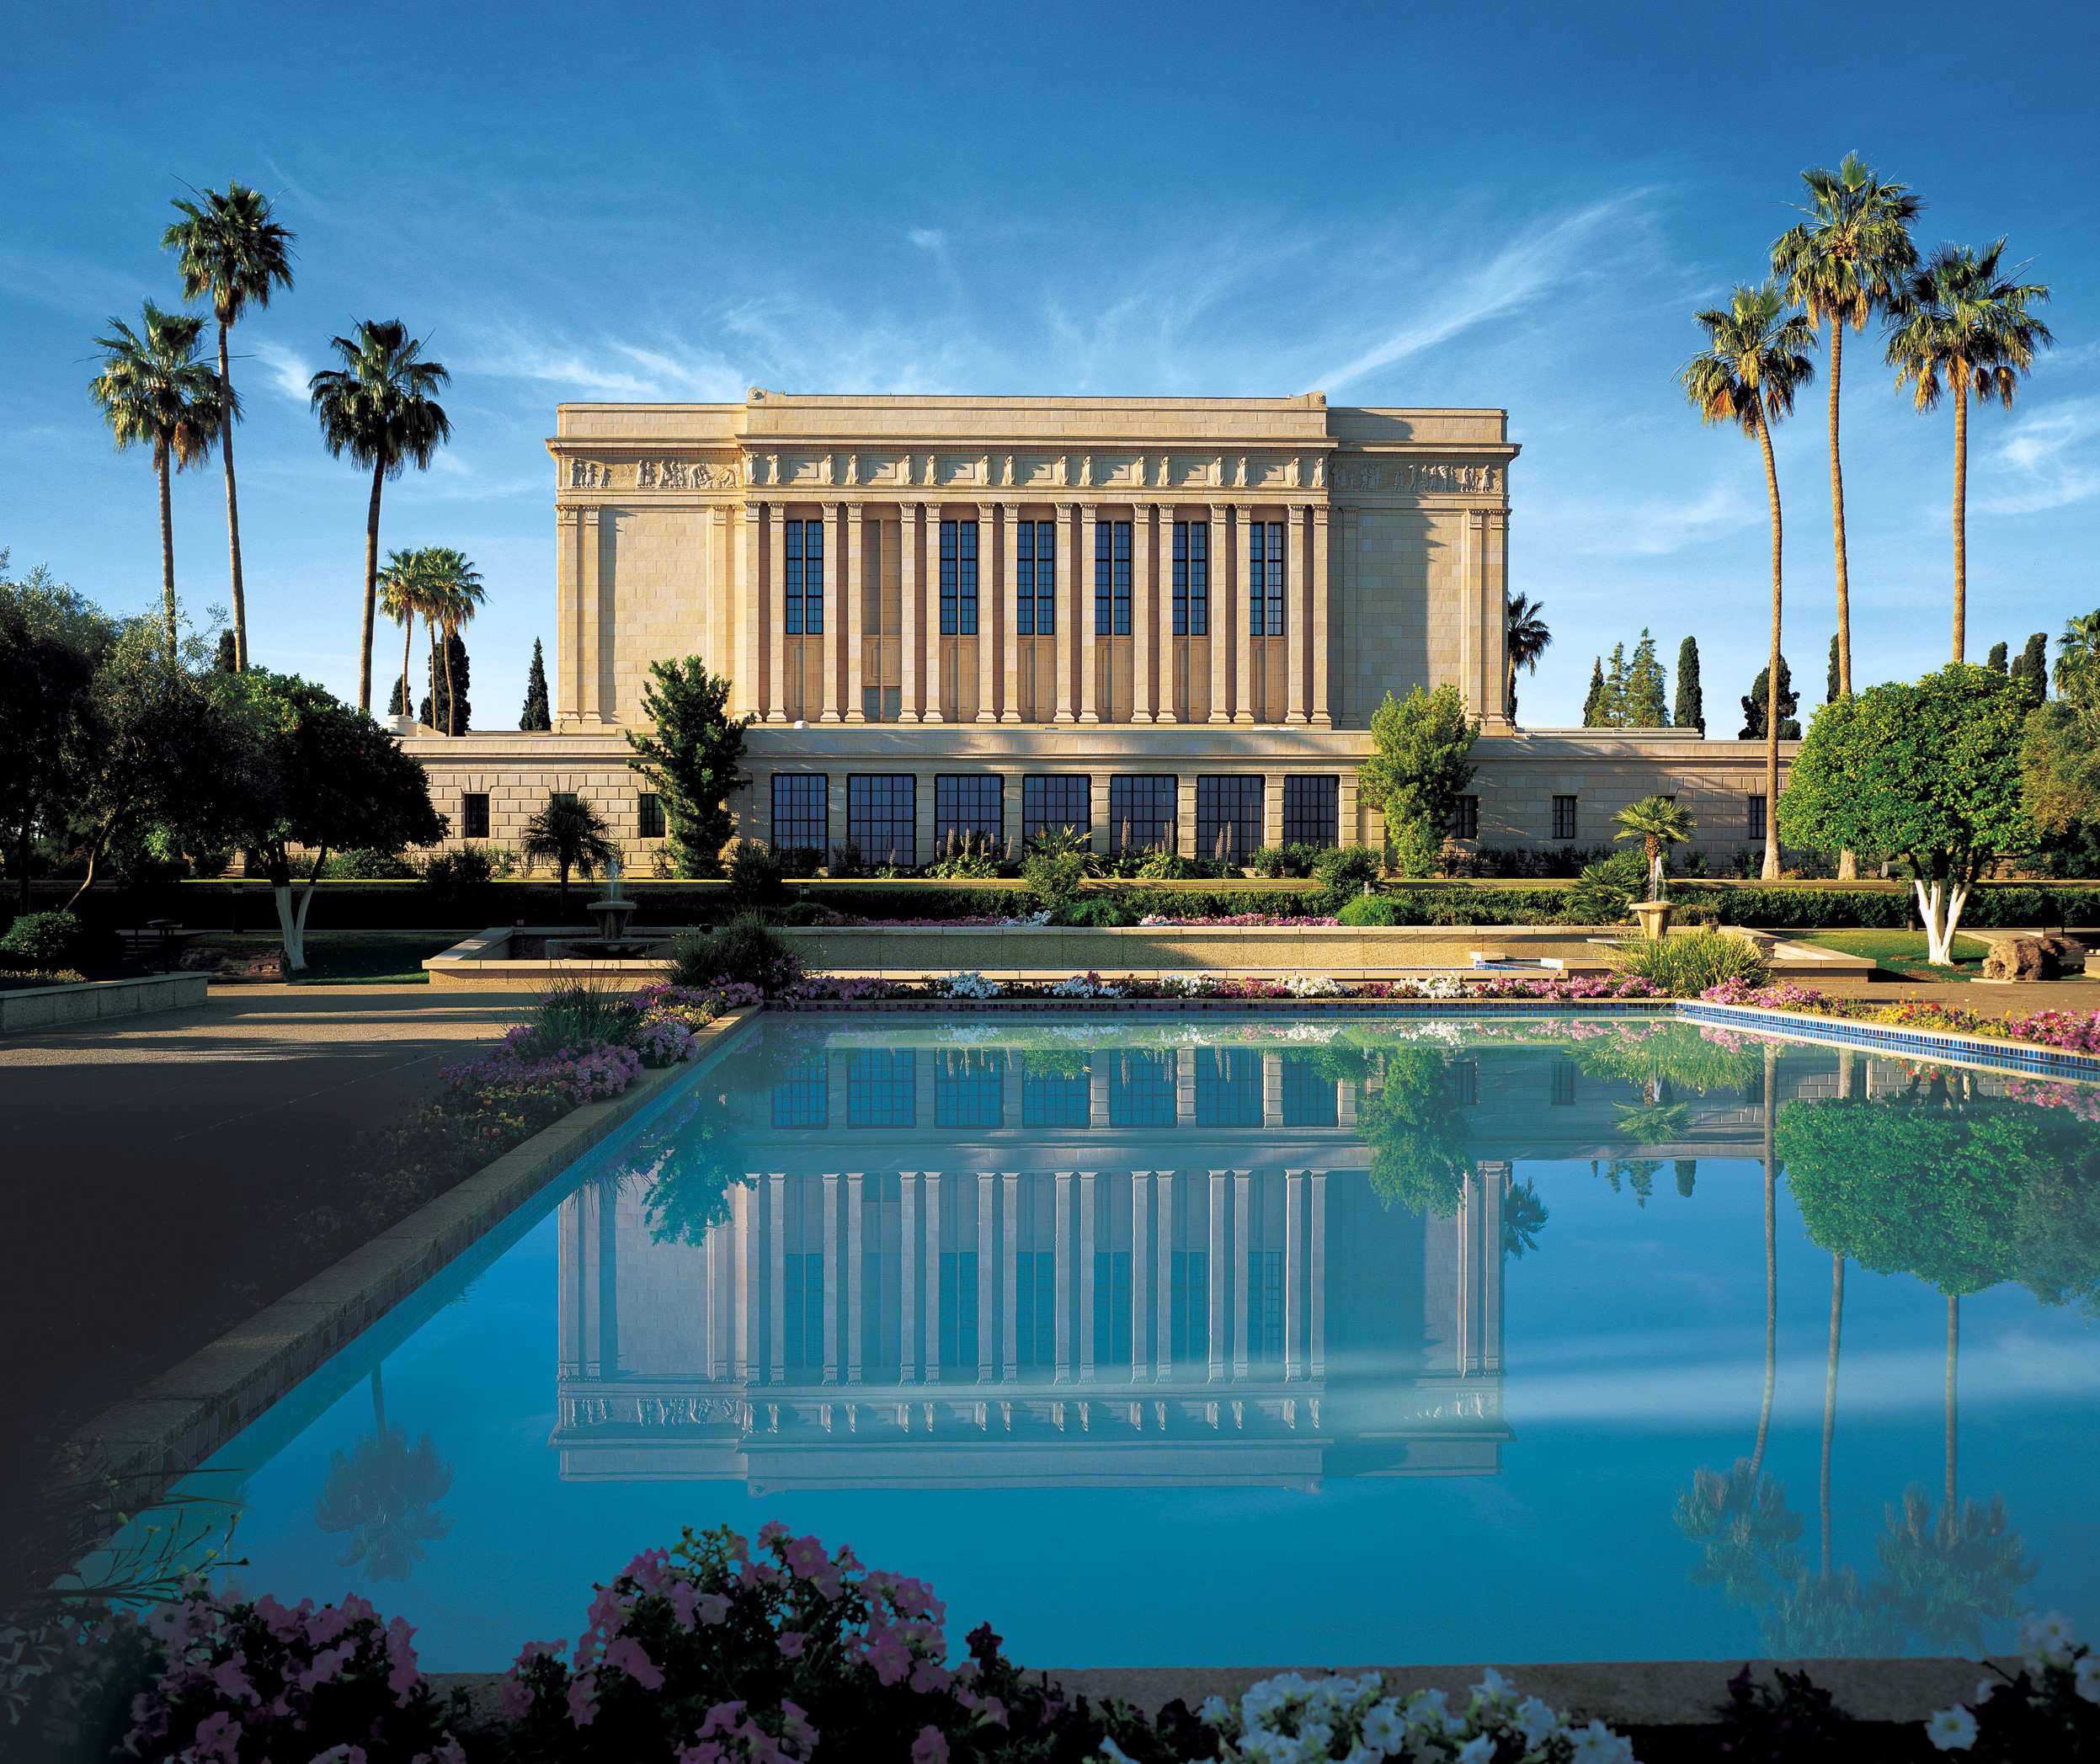 A PLACE PREPARED – Mesa Arizona Temple To Close For Two-year Renovation